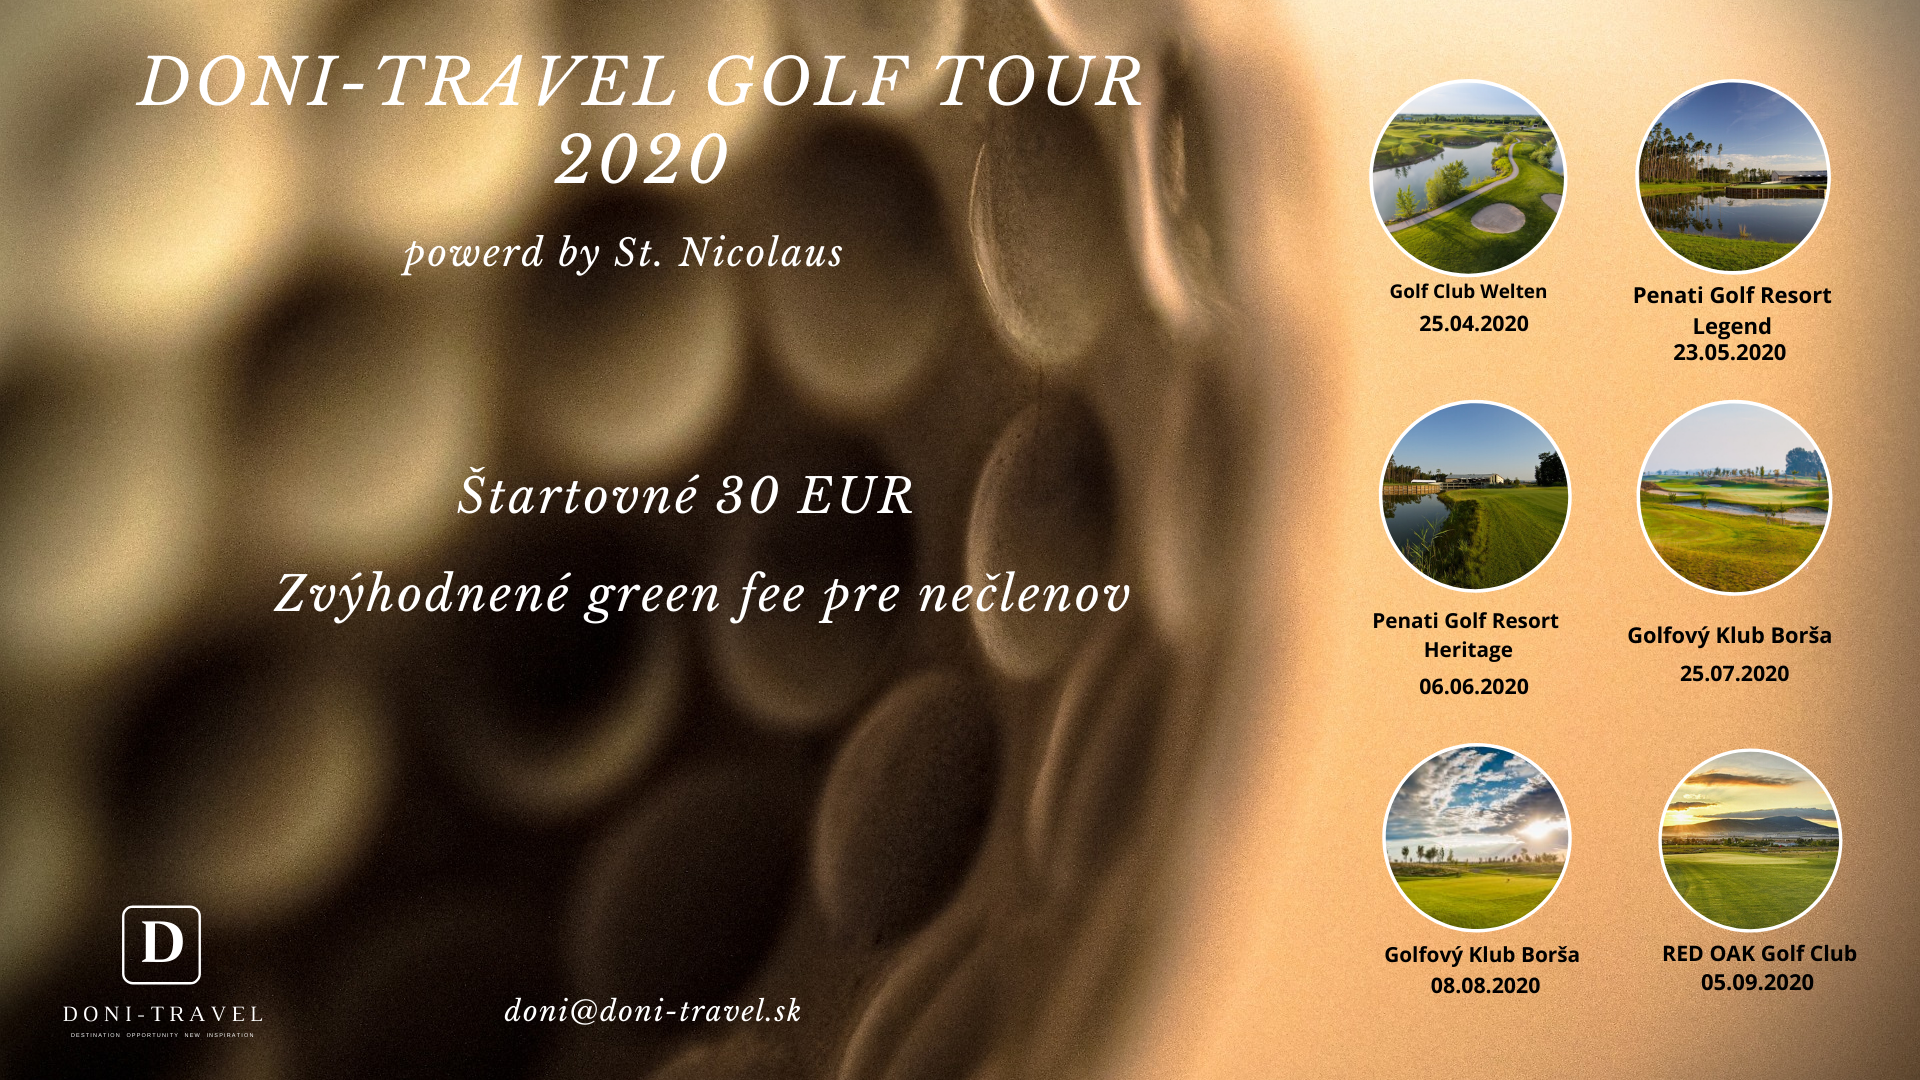 Doni-Travel golf tour 2020